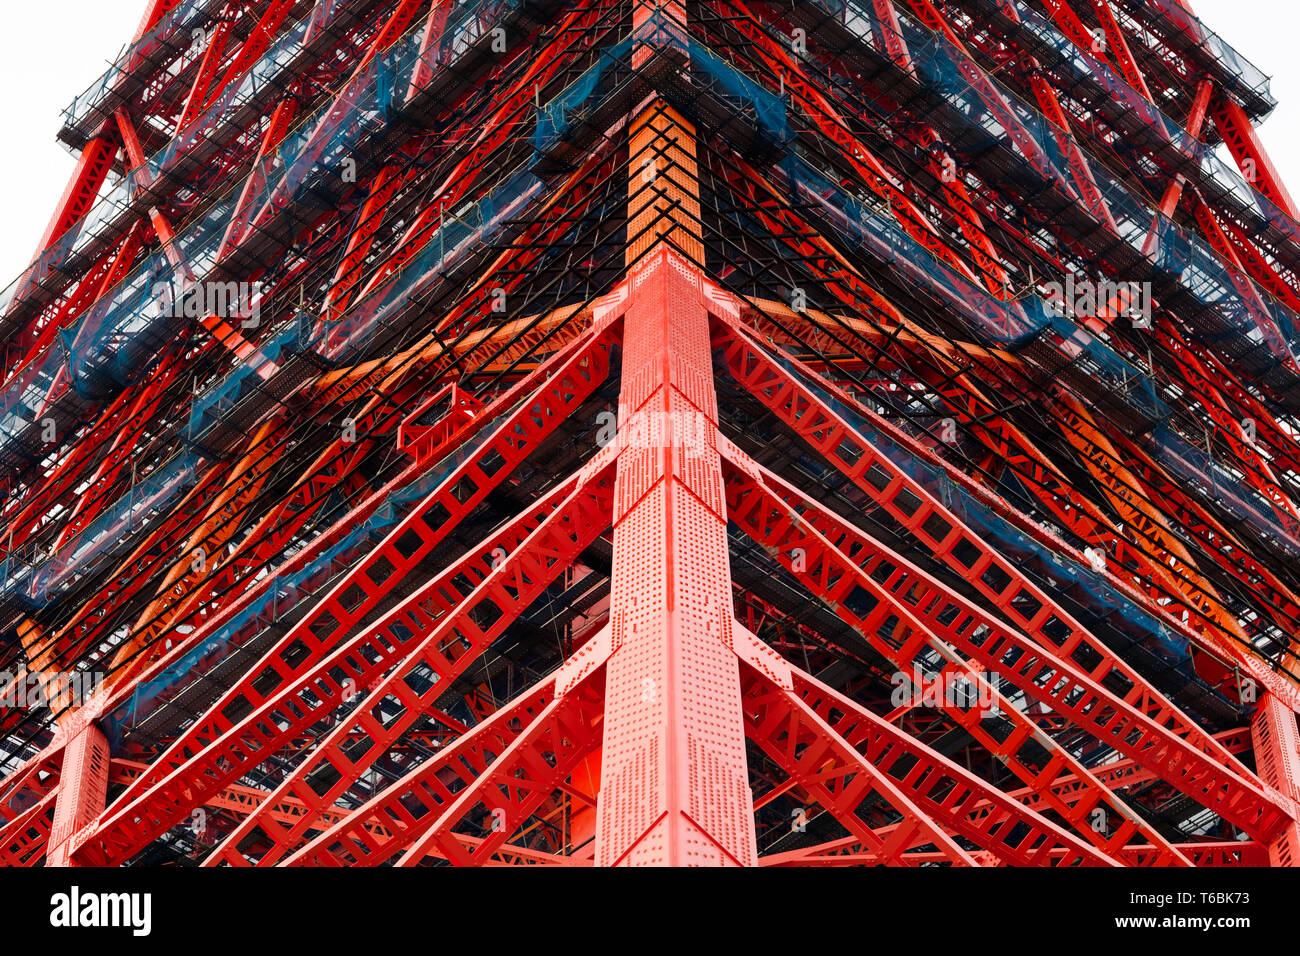 An up close intricate view of the base of Japan's iconic Tokyo Tower. - Stock Image